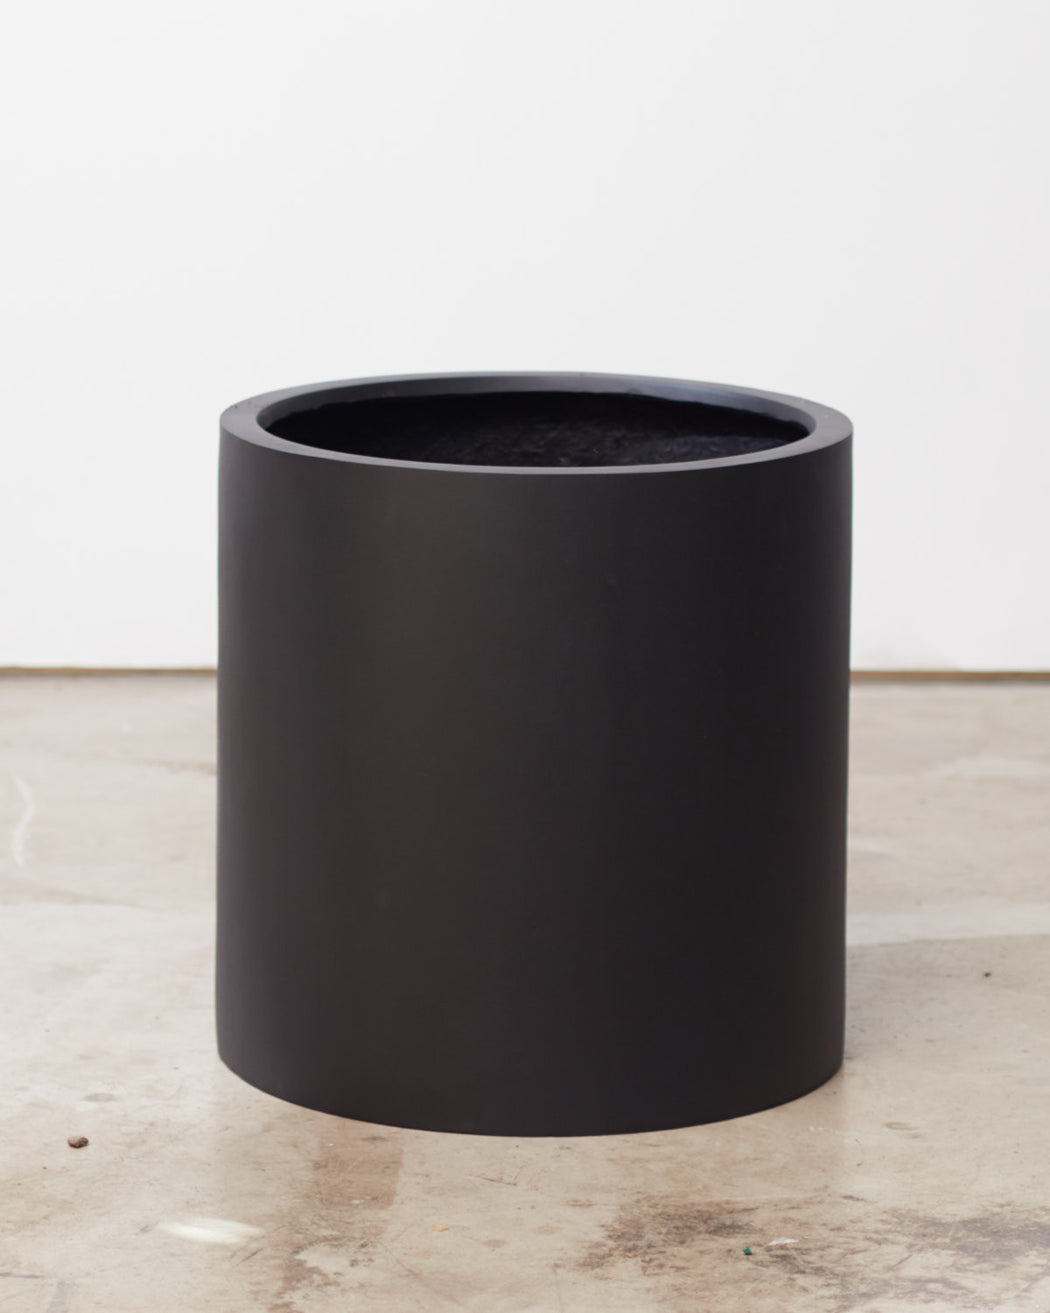 COMMON HOUSE - BLACK CYLINDER PLANTER - Large 16 Inch